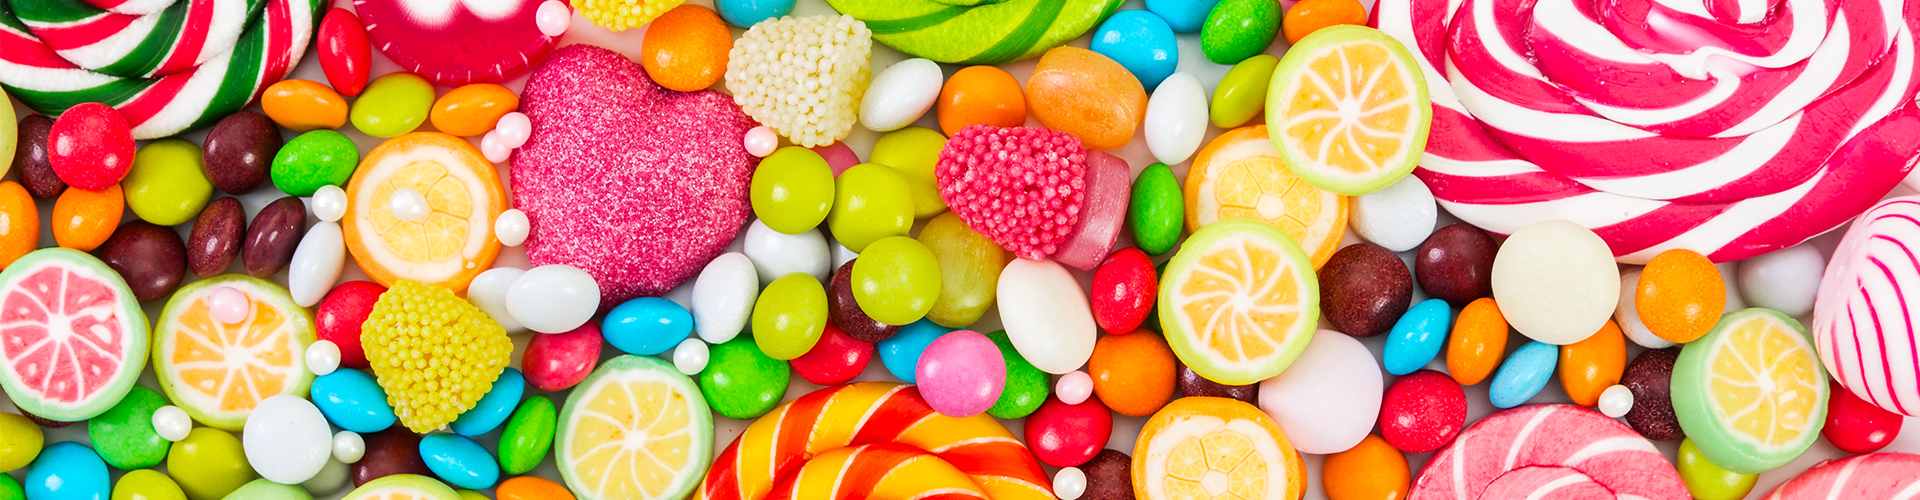 Candy & Confectionery